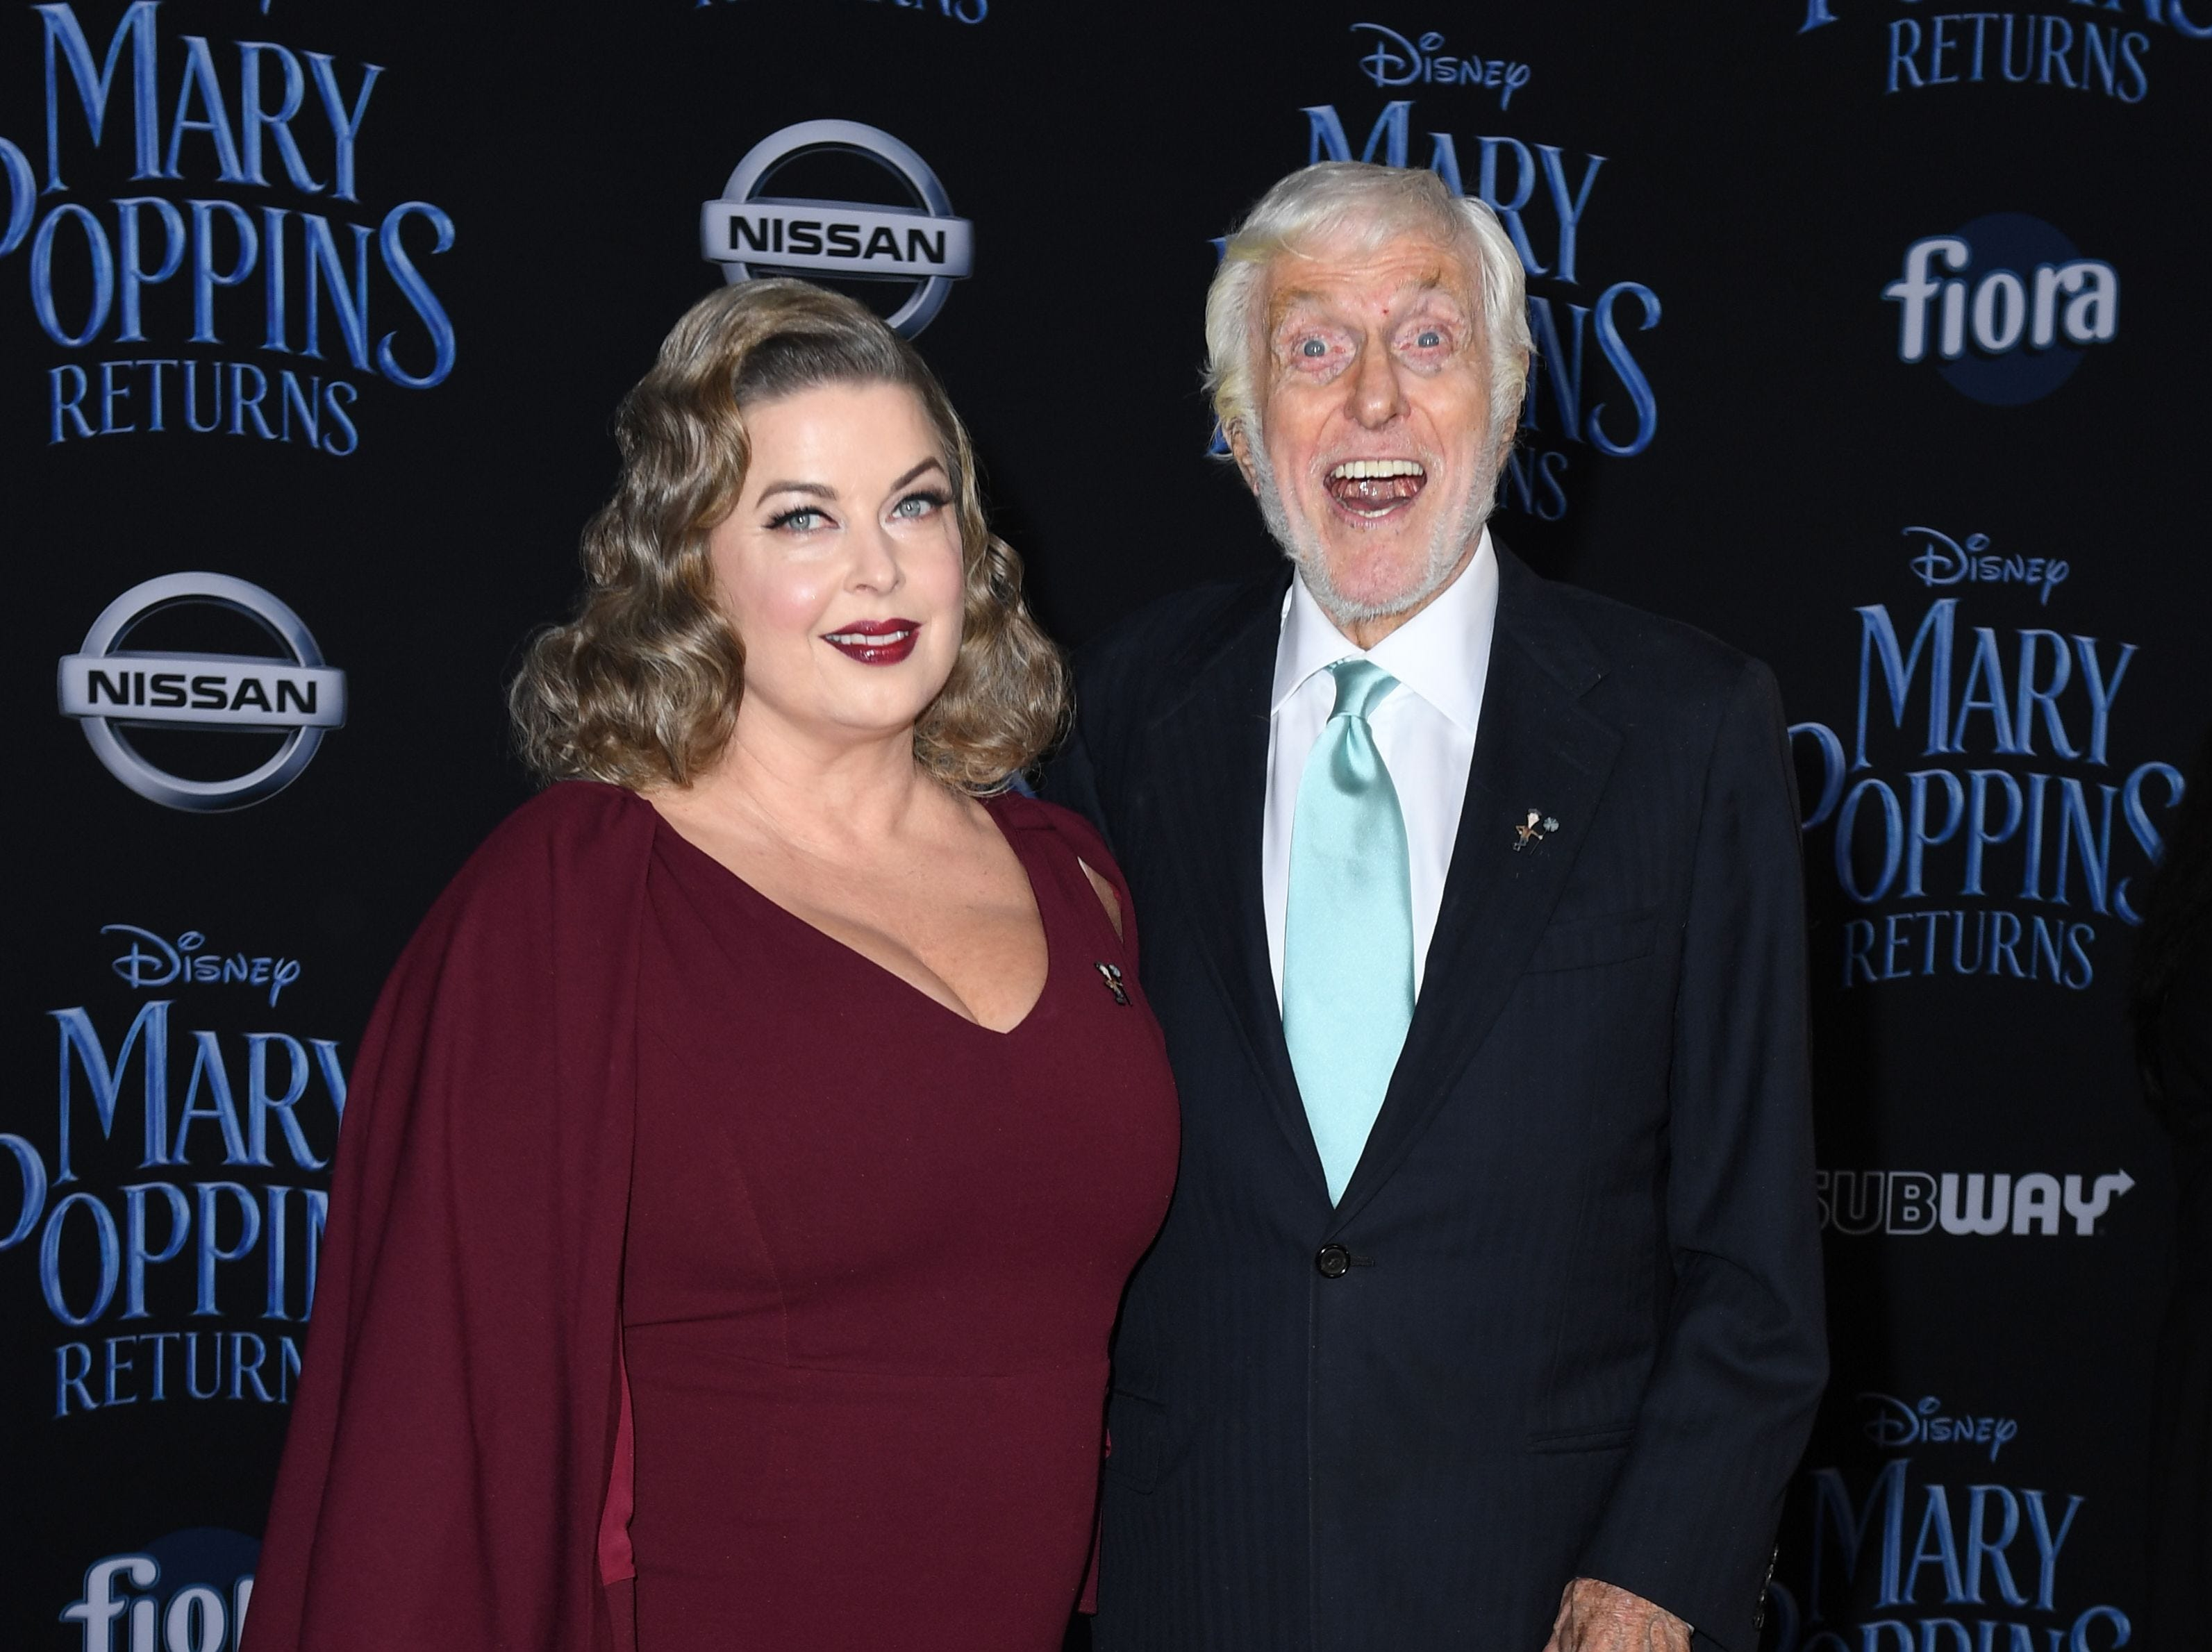 """US actor Dick Van Dyke and his wife Arlene Silver arrive for the world premiere of Disney's """"Mary Poppins Returns"""" at the Dolby theatre in Hollywood on November 29, 2018. (Photo by VALERIE MACON / AFP)VALERIE MACON/AFP/Getty Images ORG XMIT: 'Mary Pop ORIG FILE ID: AFP_1B81NV"""